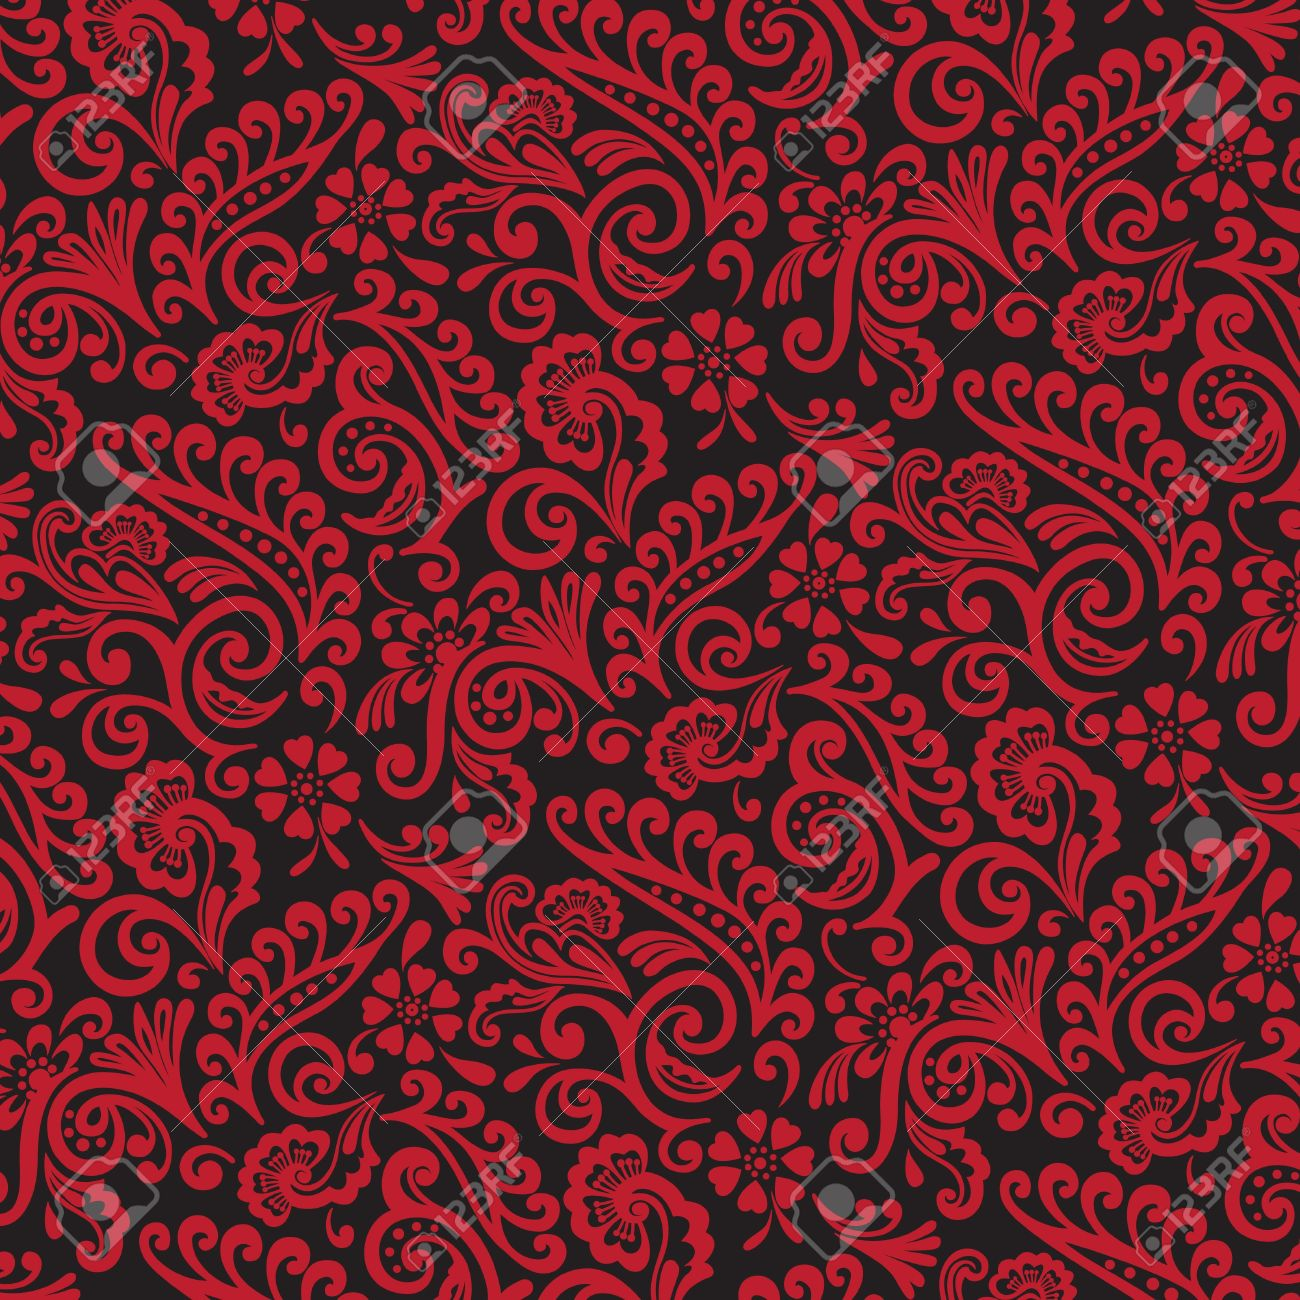 Red And Black Victorian Floral Wallpaper